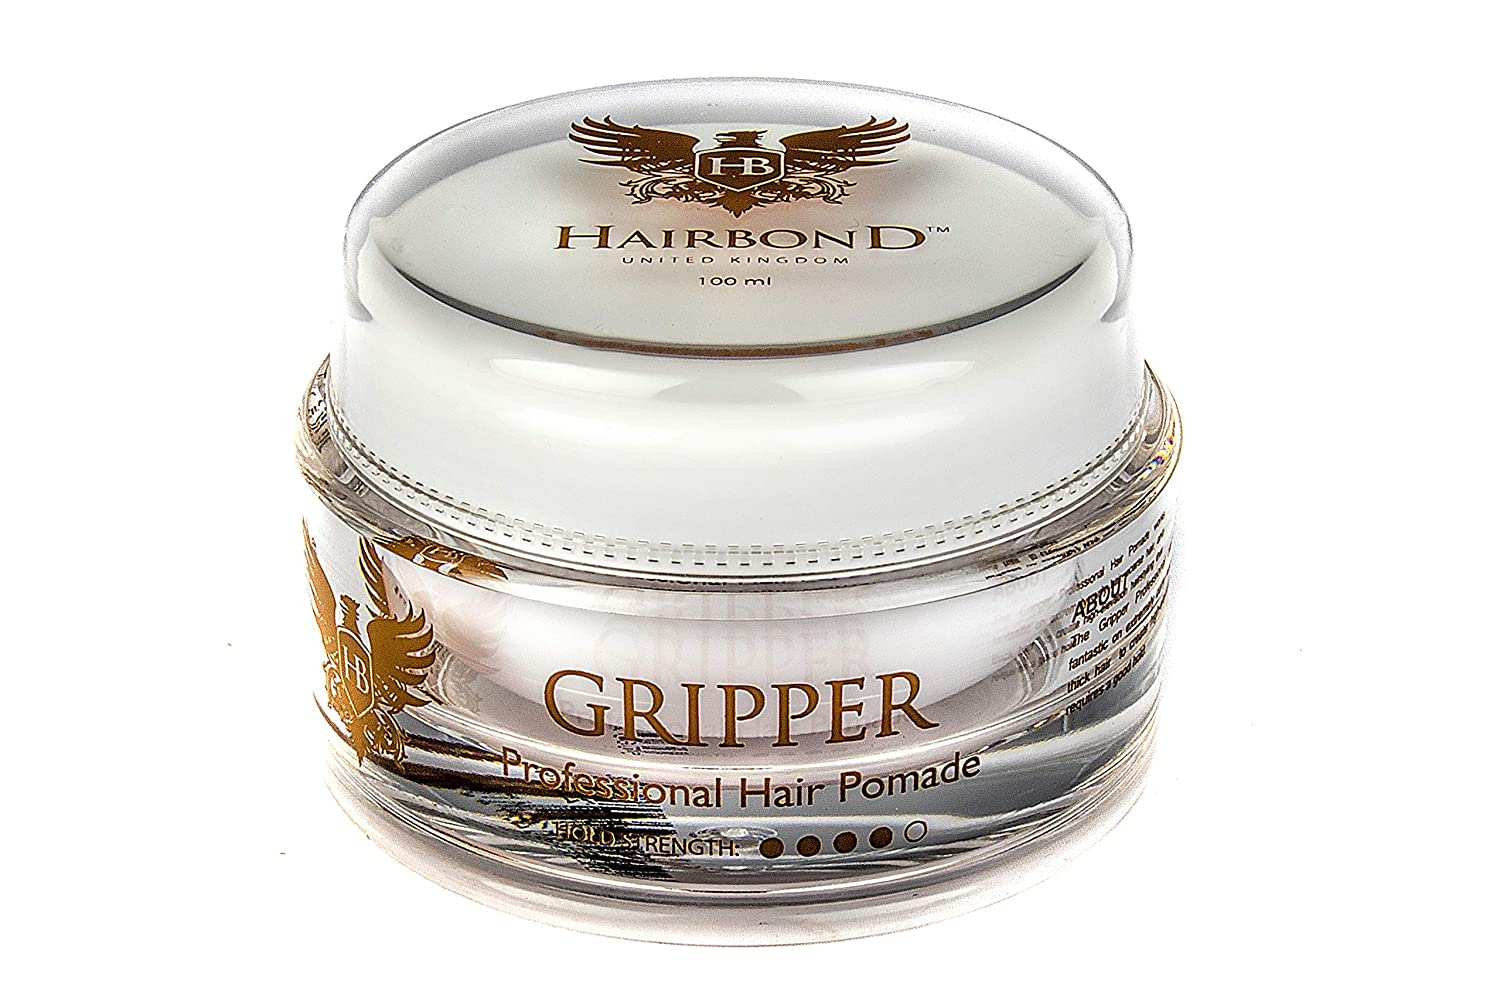 Image result for hairbond gripper